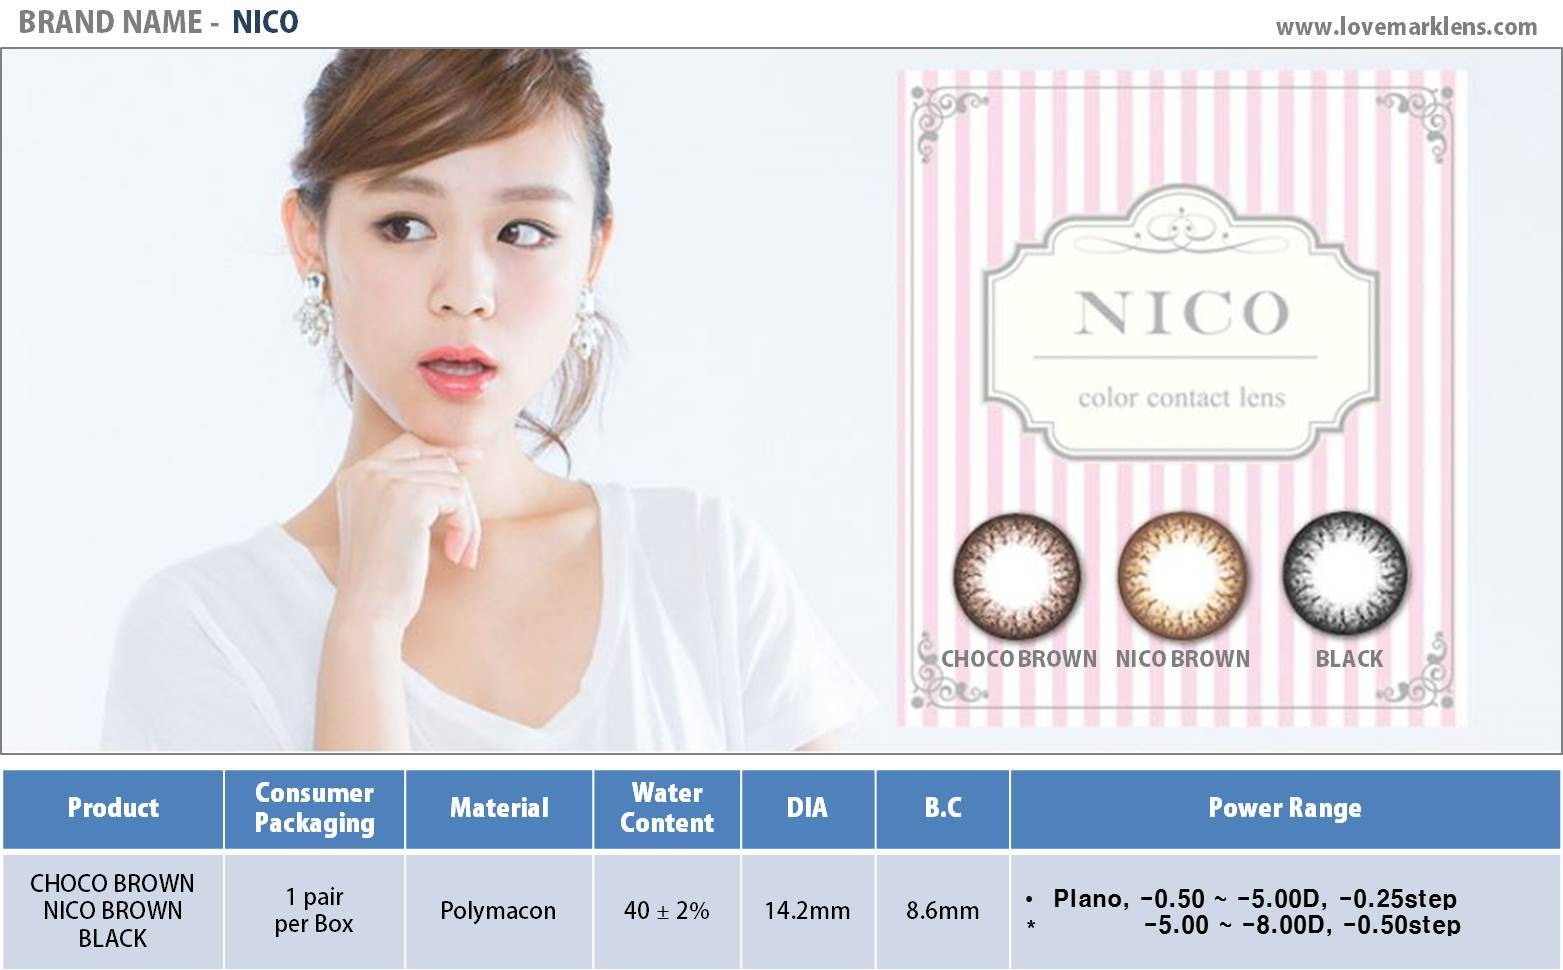 NICO Color Contact Lens